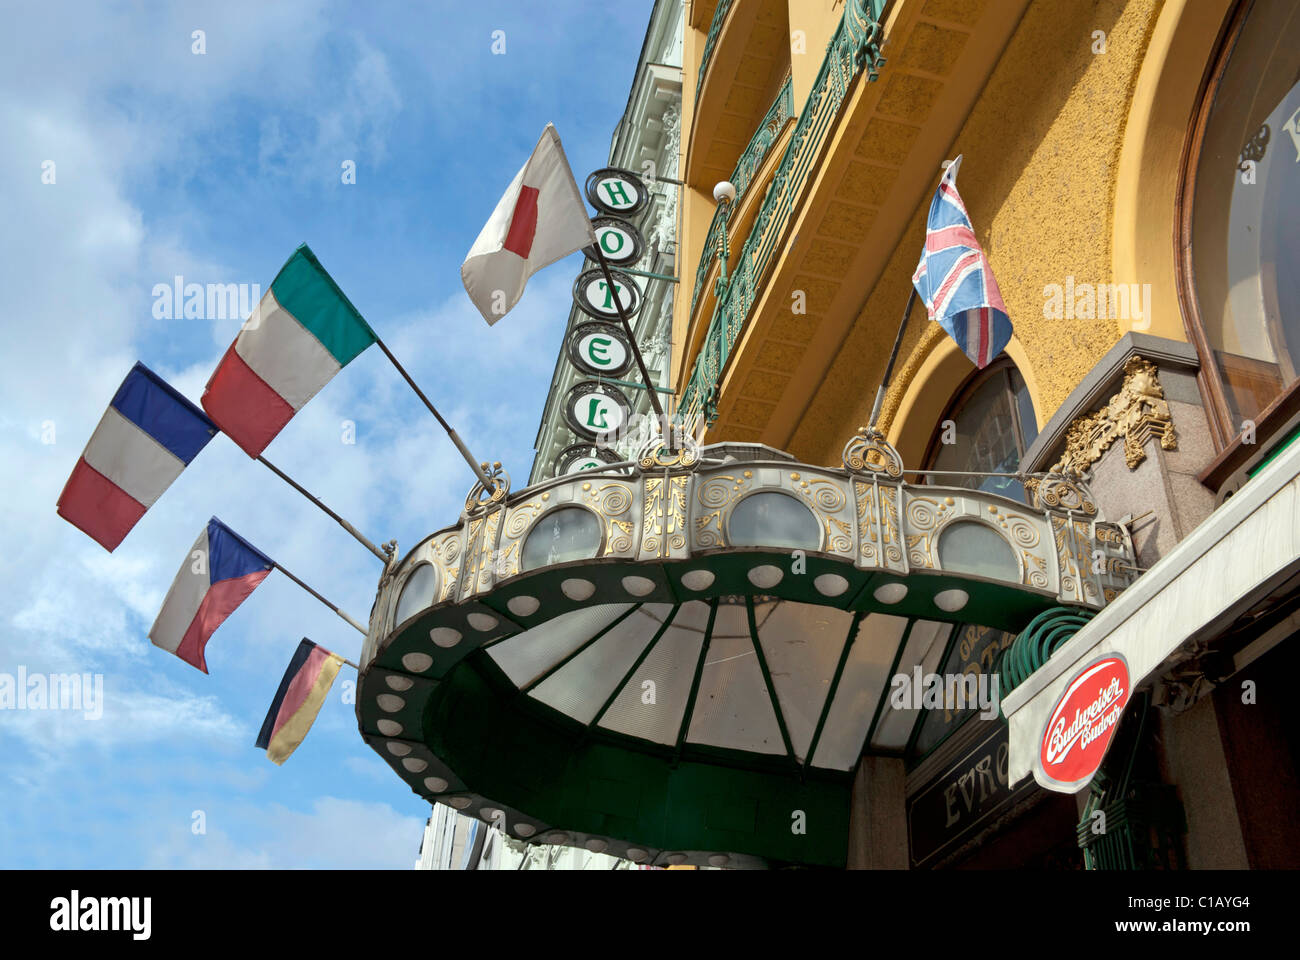 The front of the Grand Europa Hotel in Wenceslas Square, Prague - Stock Image